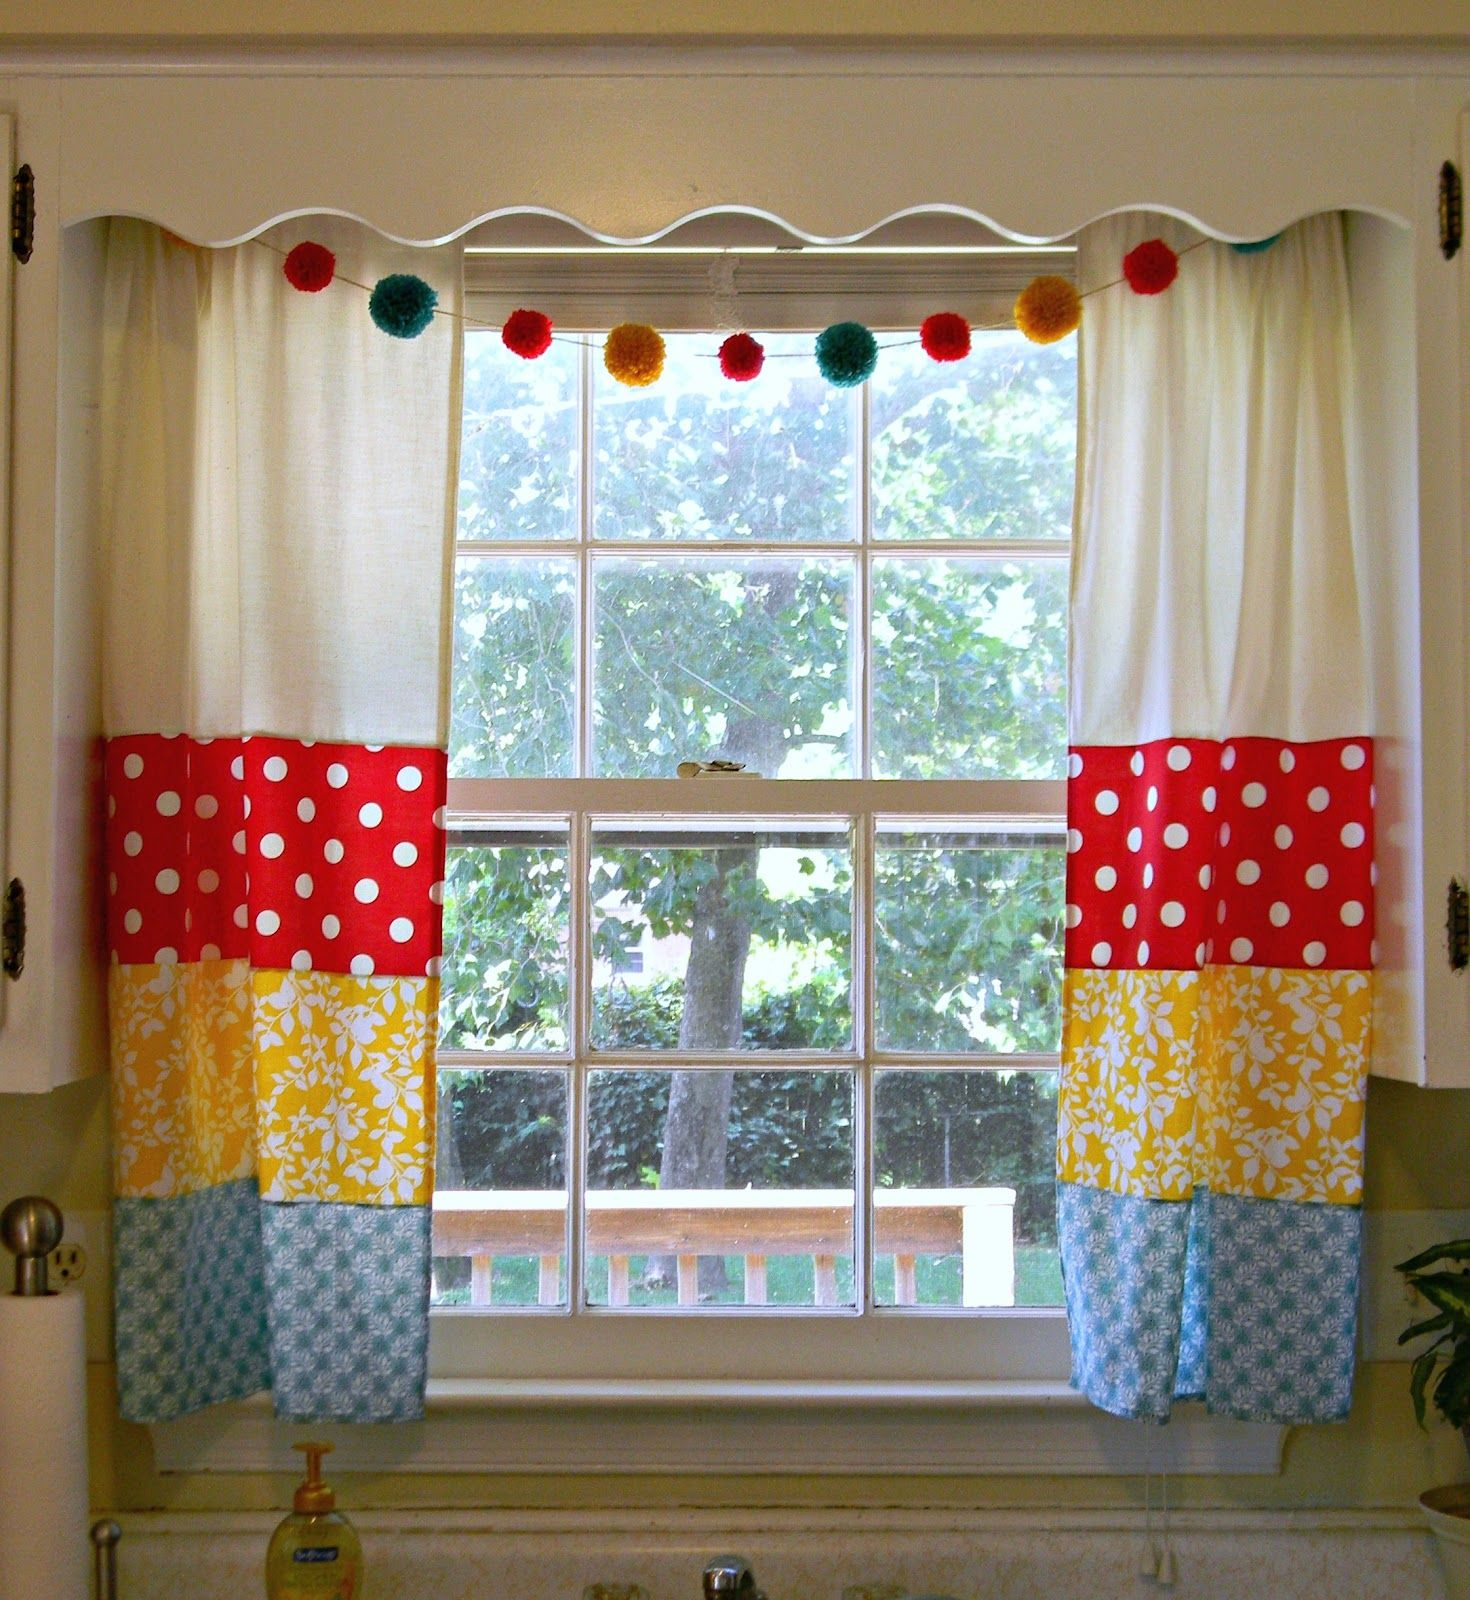 Curtain Designs For Kitchen Windows: Vintage Kitchen Curtains Ideas